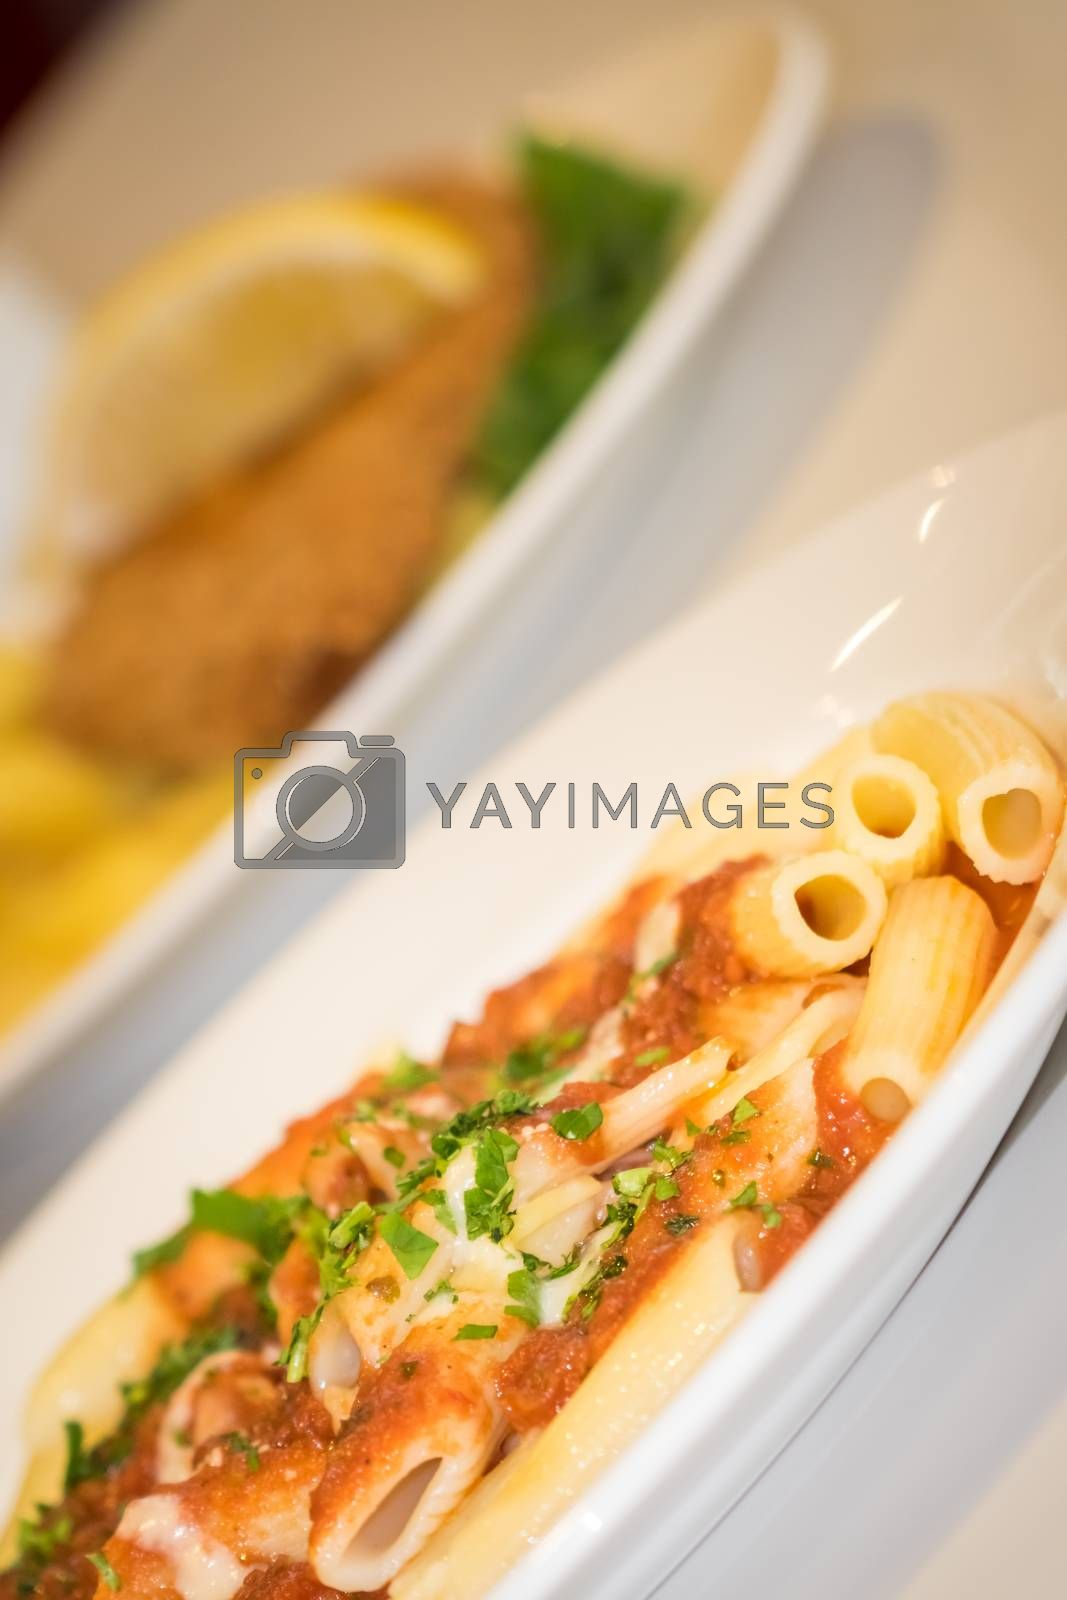 Close-up of freshly made pasta penne arabiata garnished with green parsley